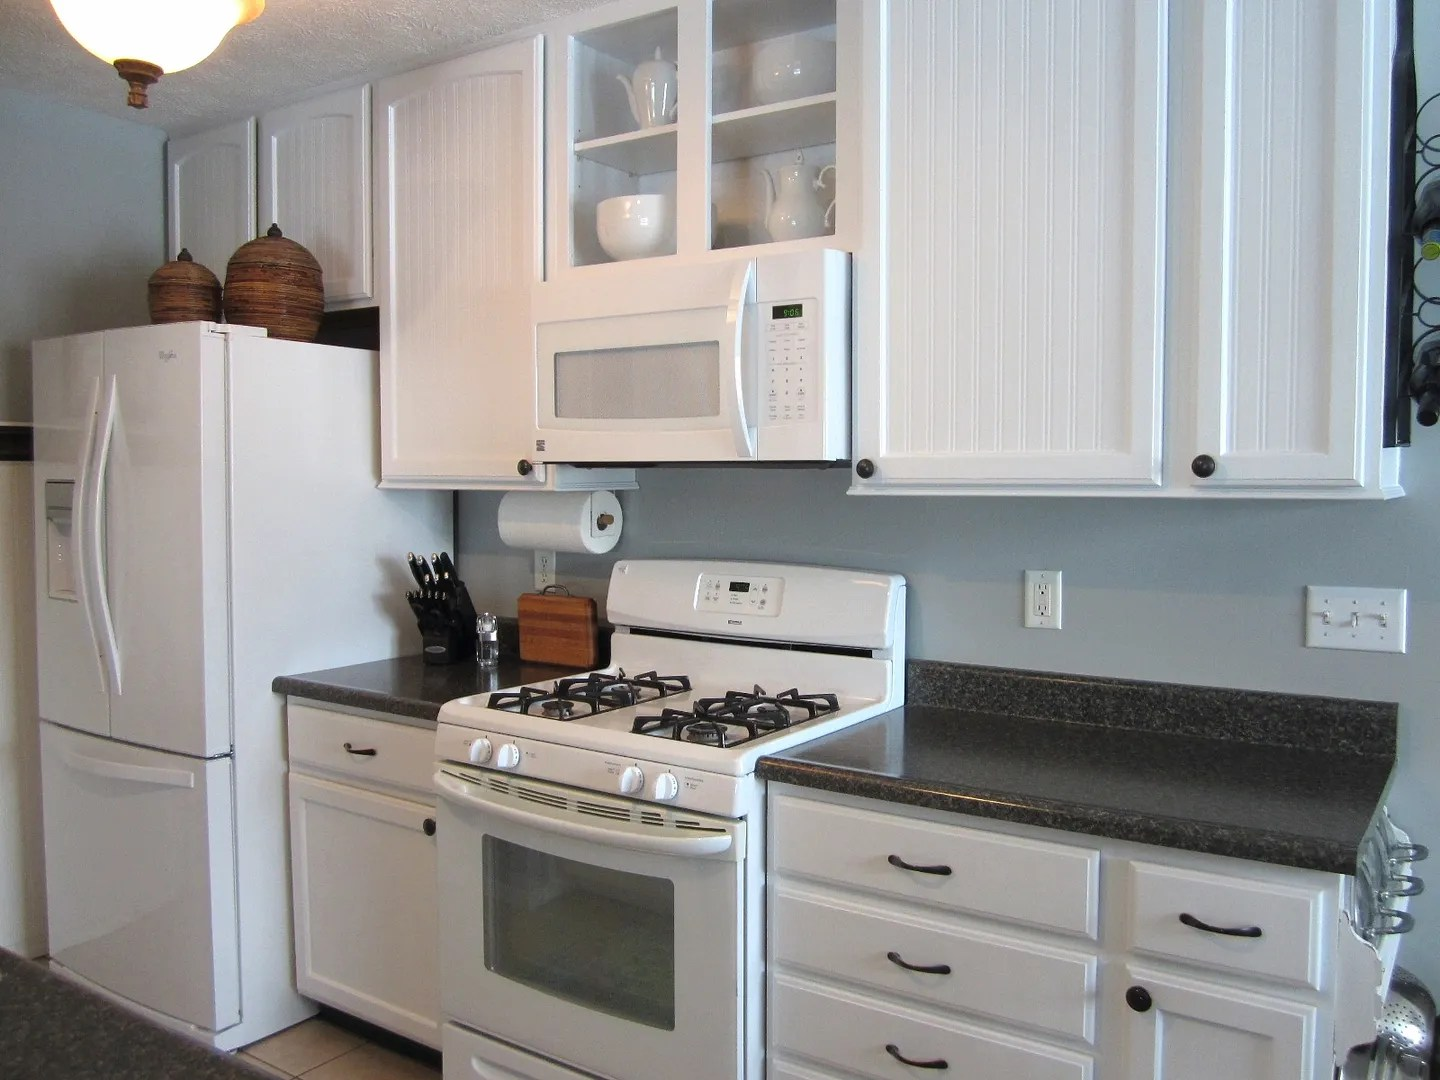 Cabinet Paint That Matches White Kitchen Appliances Home